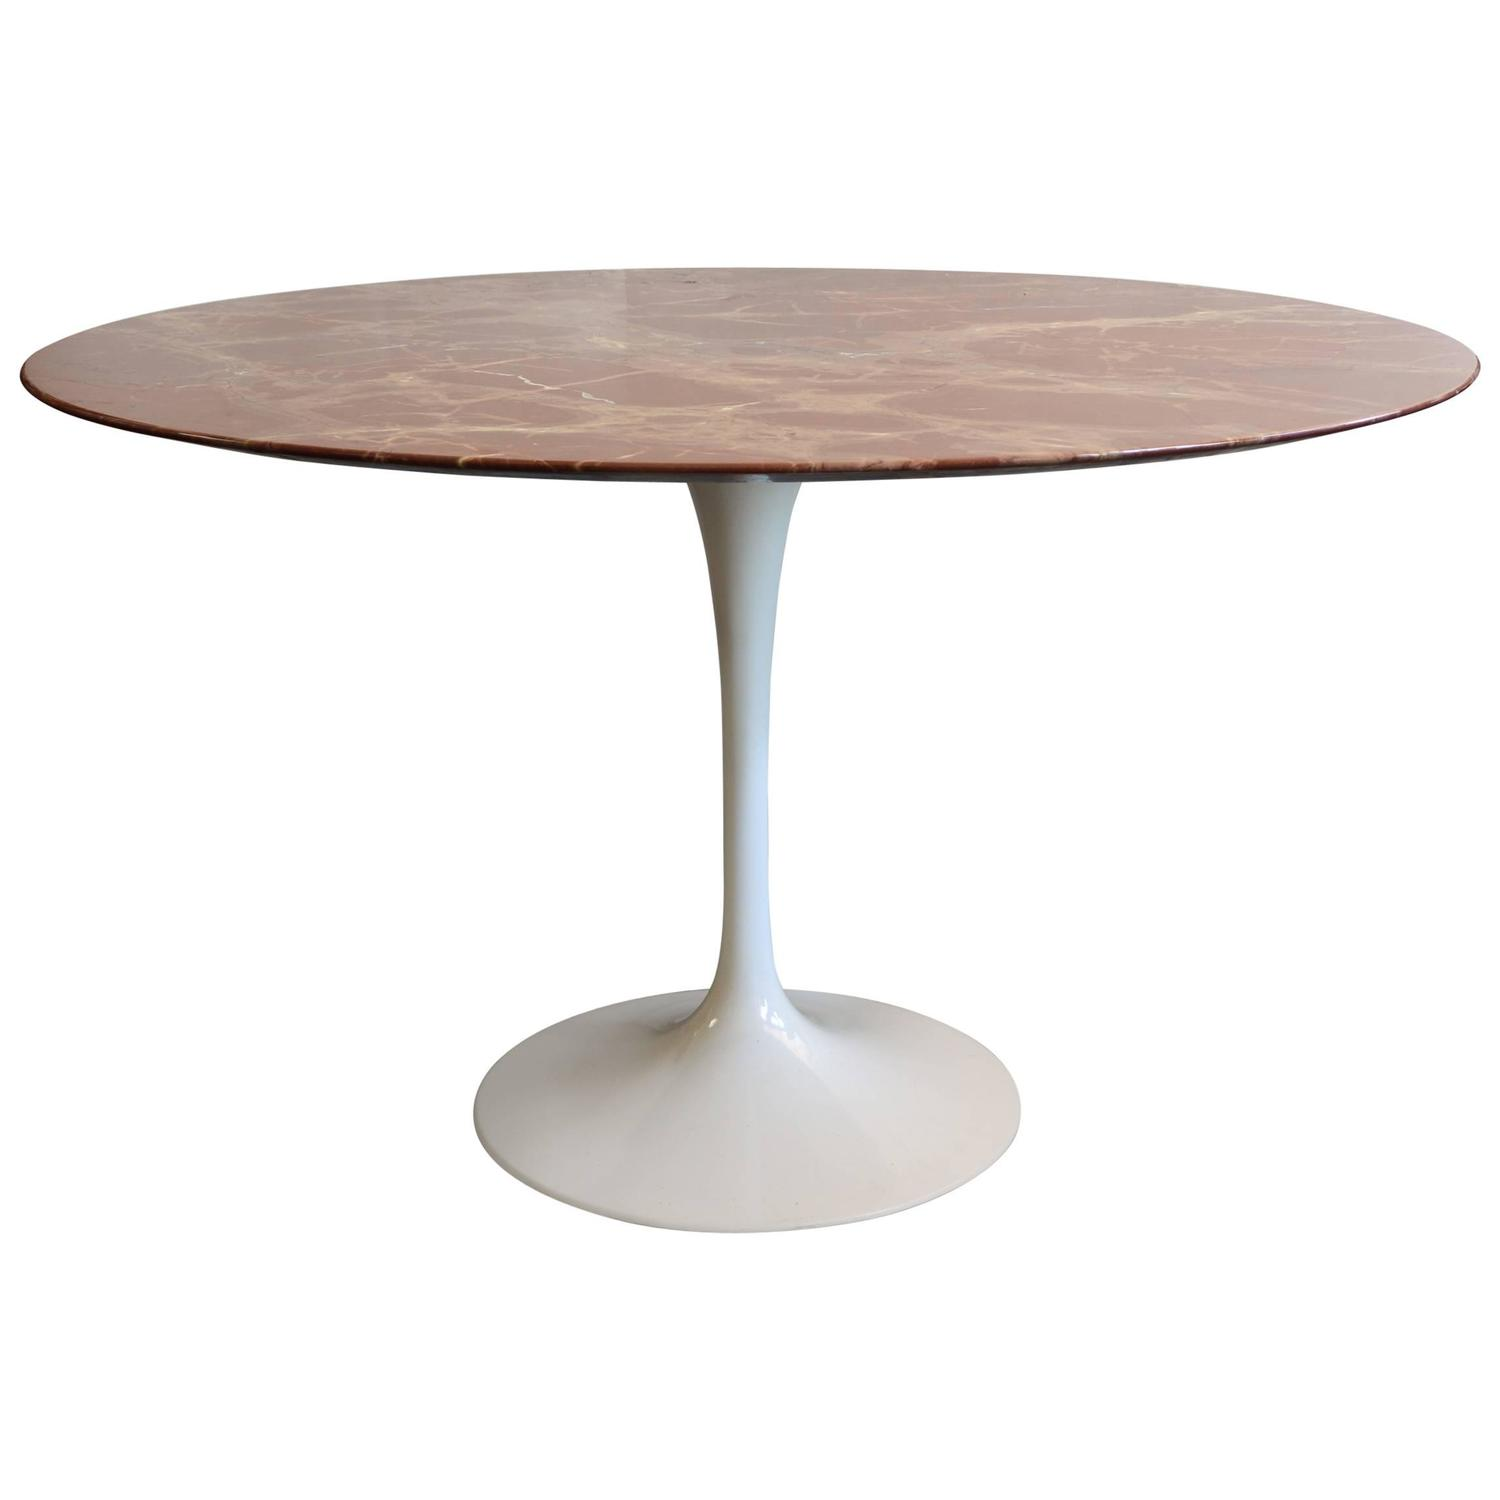 saarinen rose marble tulip dining table at 1stdibs